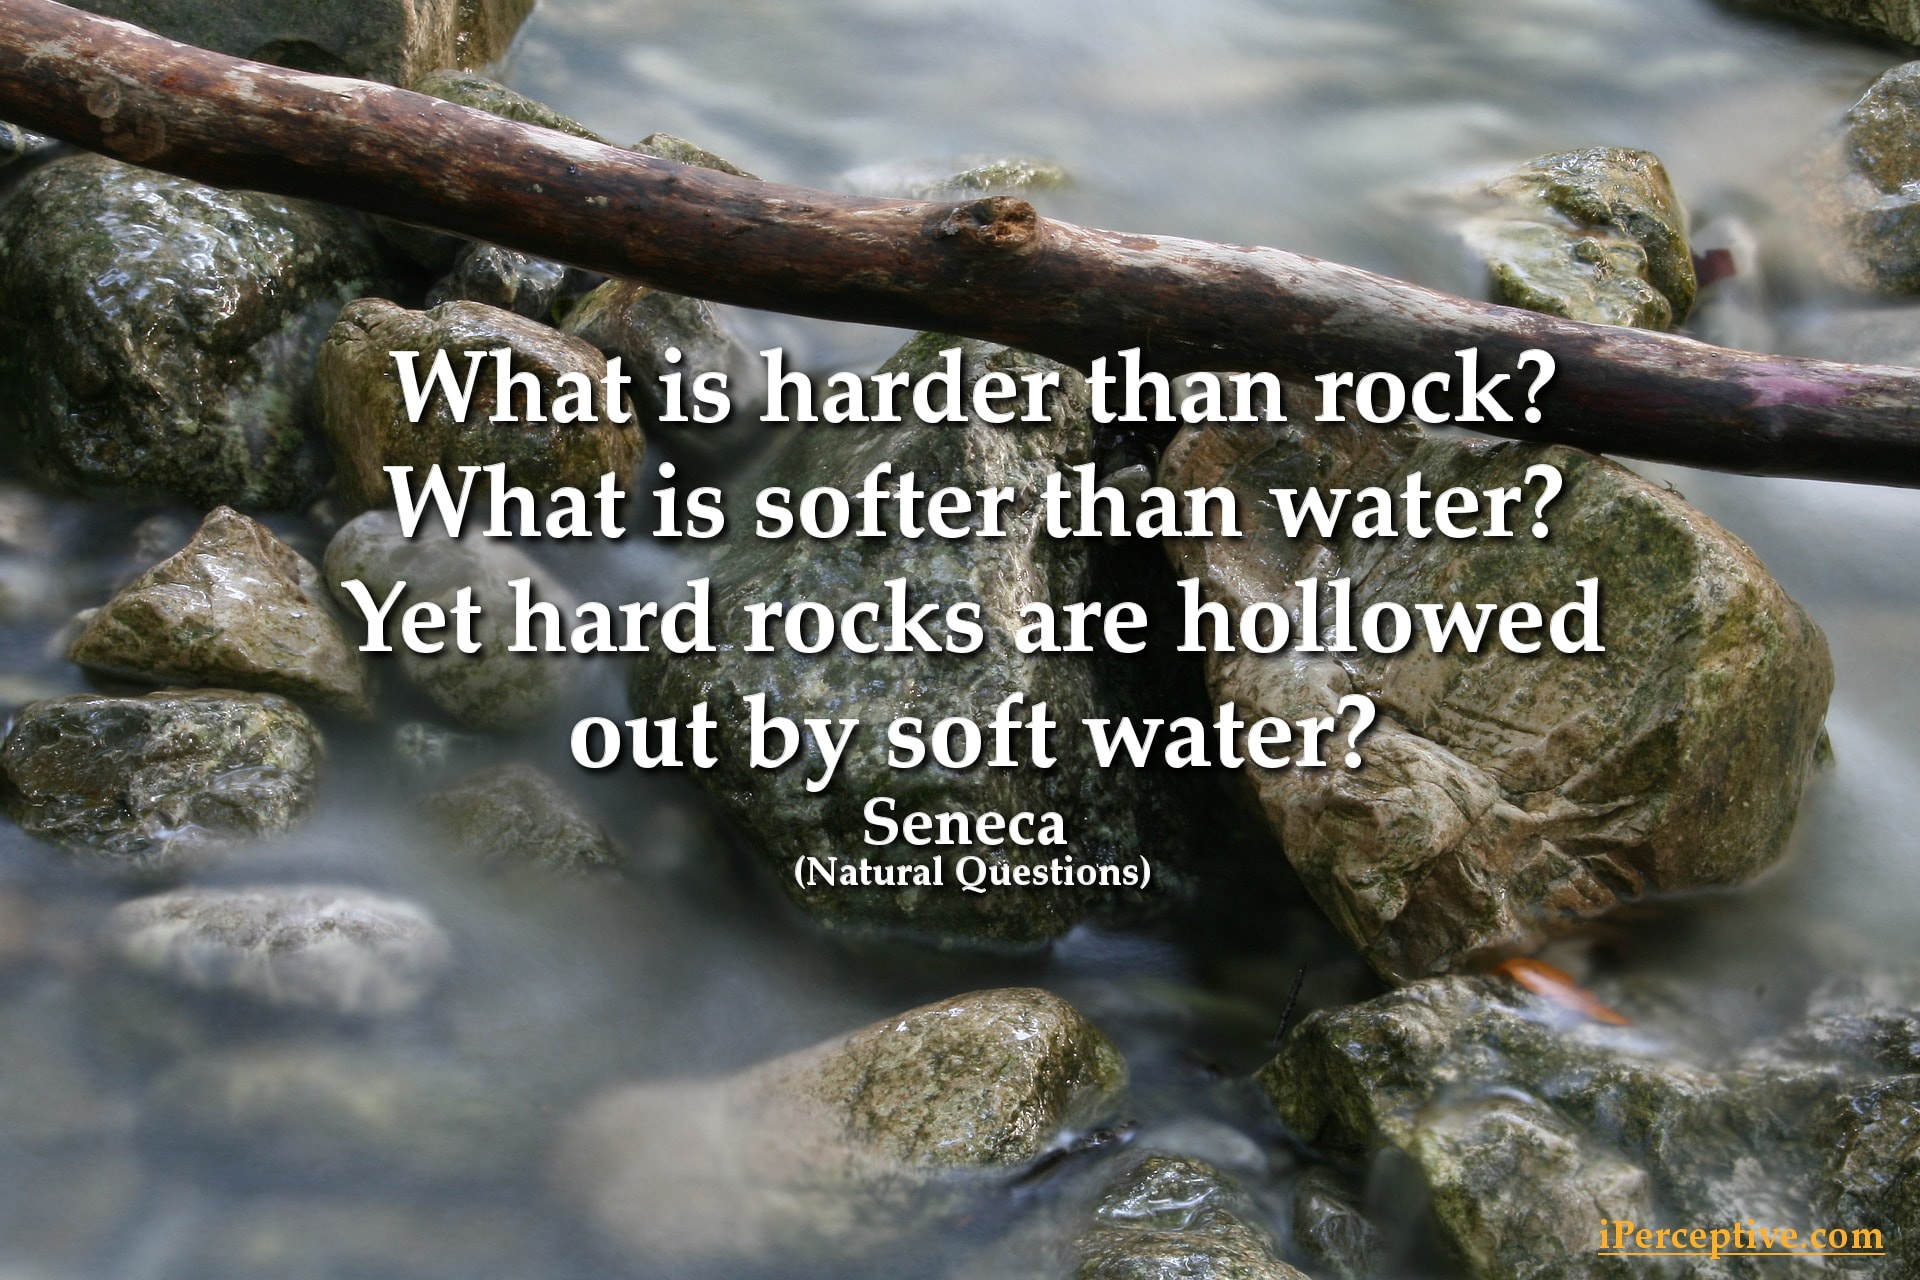 Seneca Stoicism Quote: What is harder than rock? what is softer than water?...